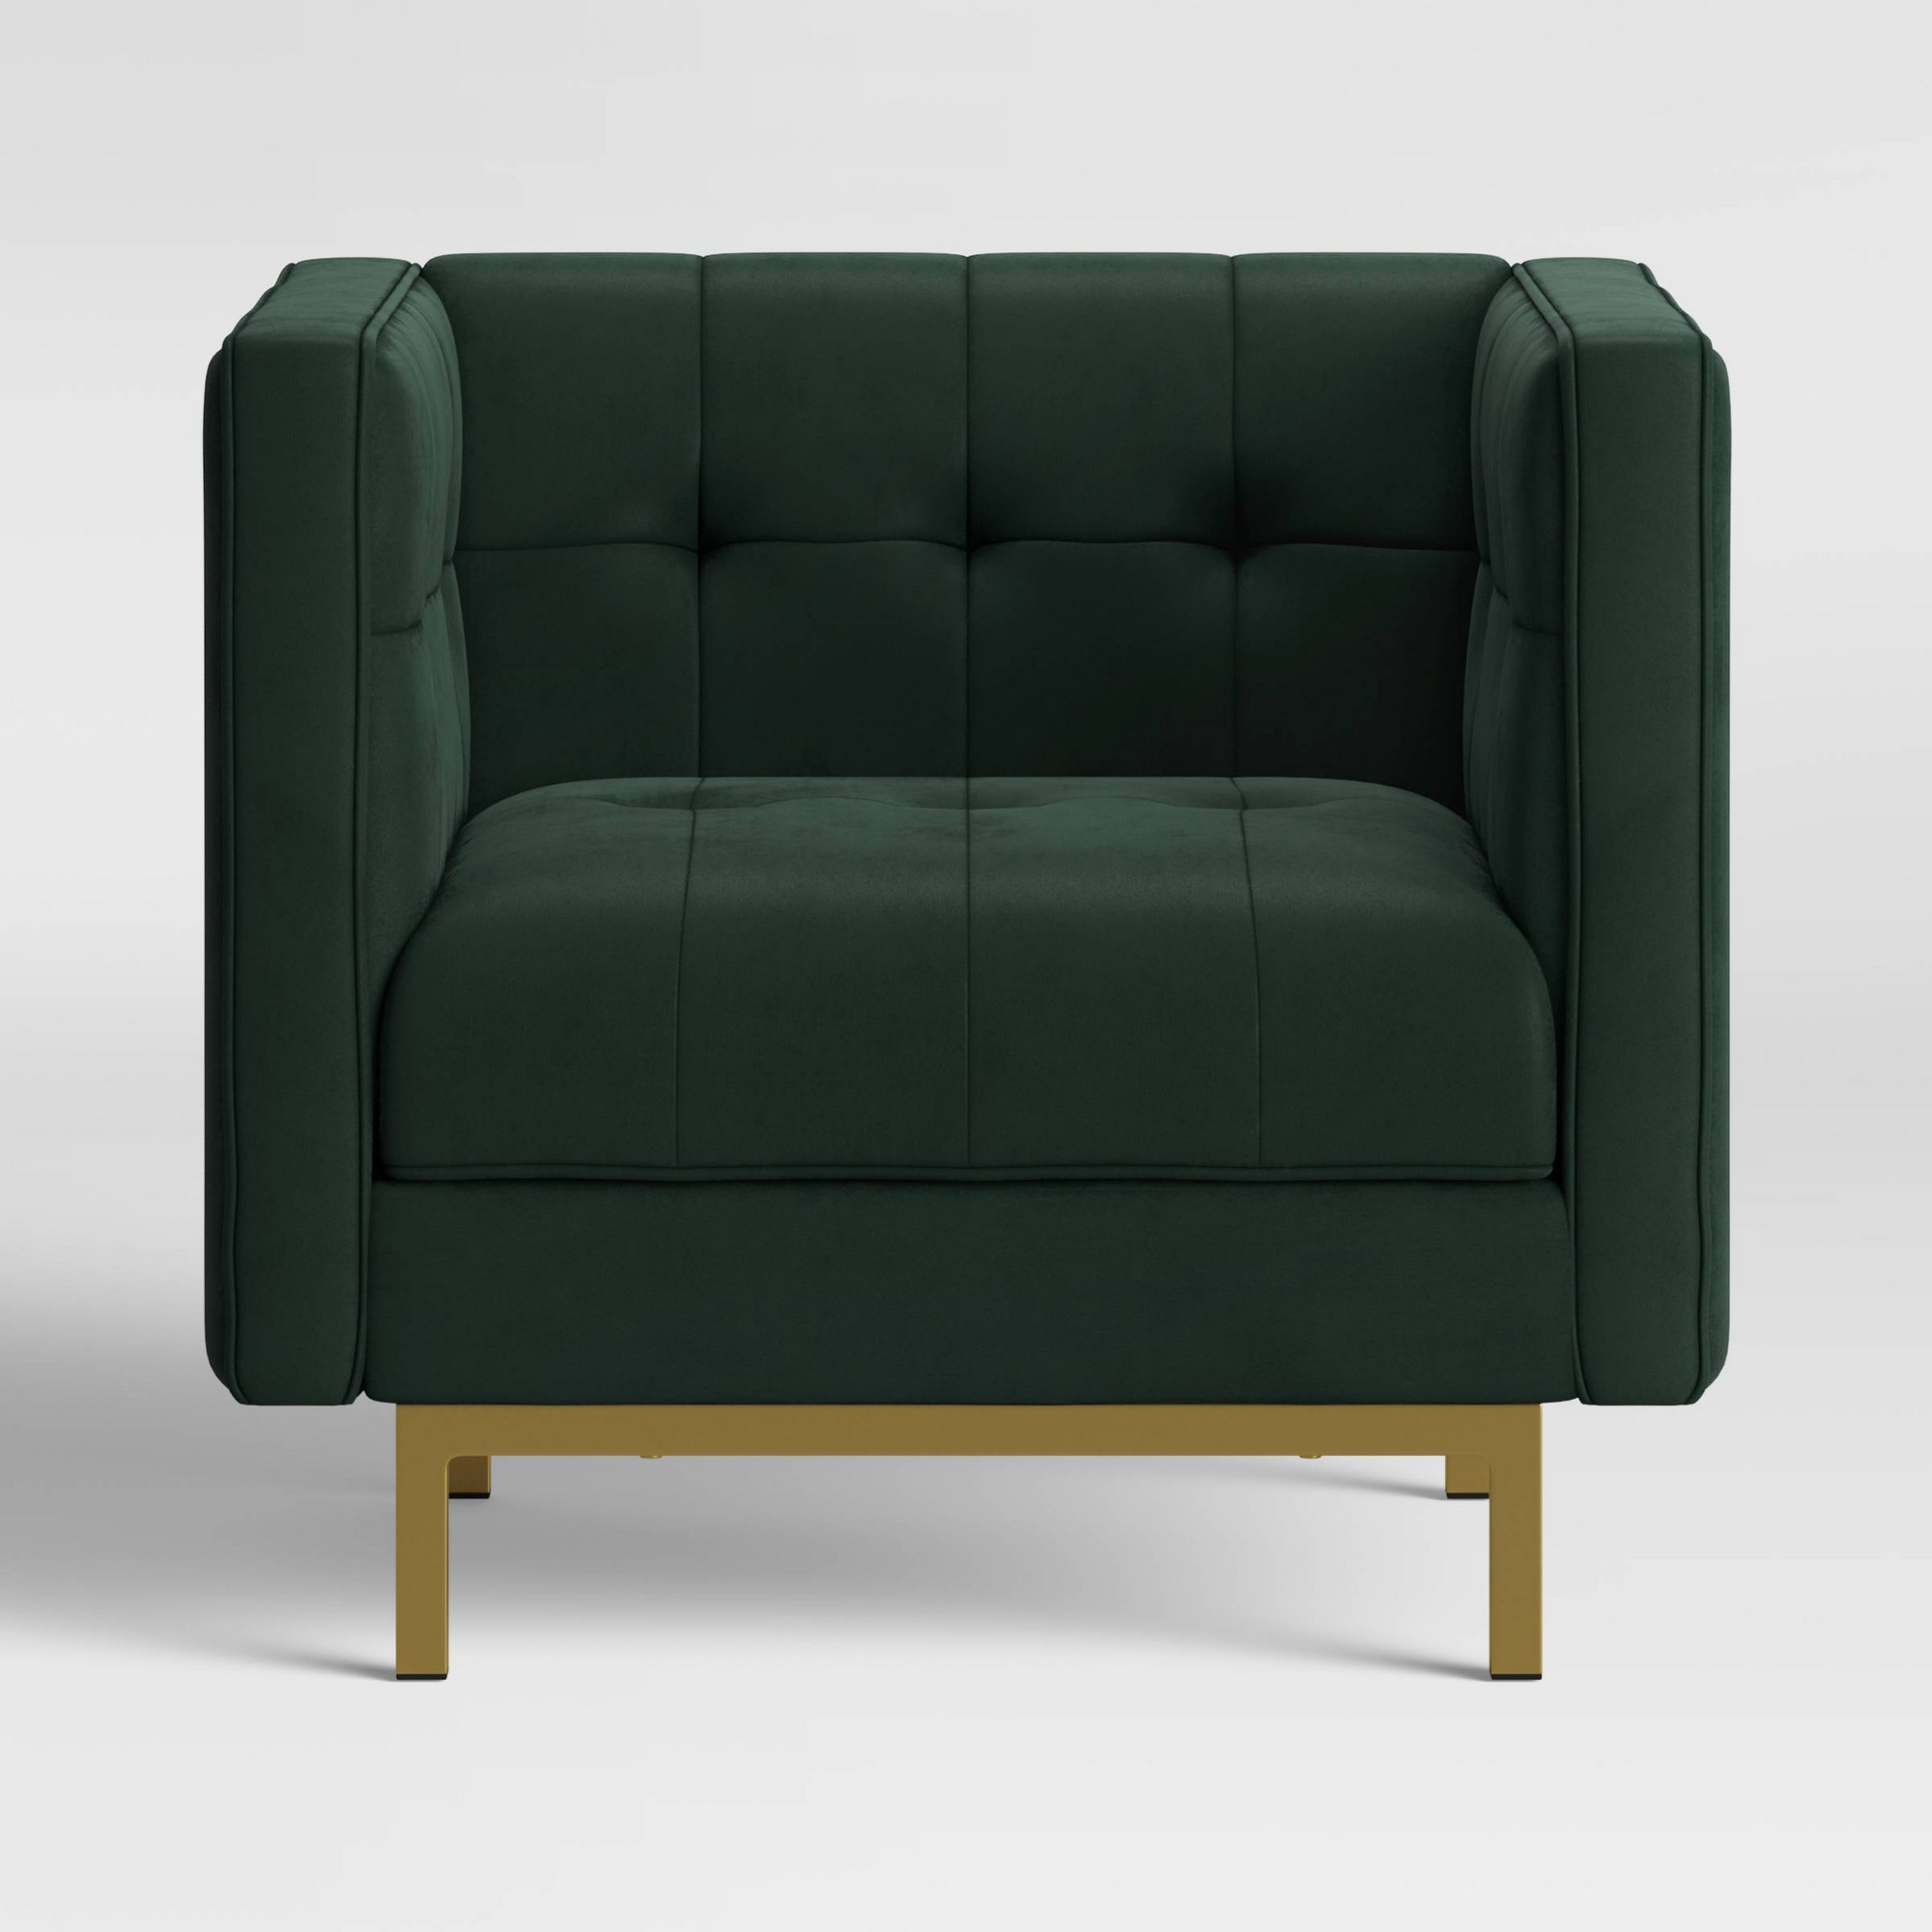 Cologne Tufted Track Arm Chair Emerald Green – Project 62 – Target For Best And Newest Allis Tufted Polyester Blend Wingback Chairs (View 16 of 20)